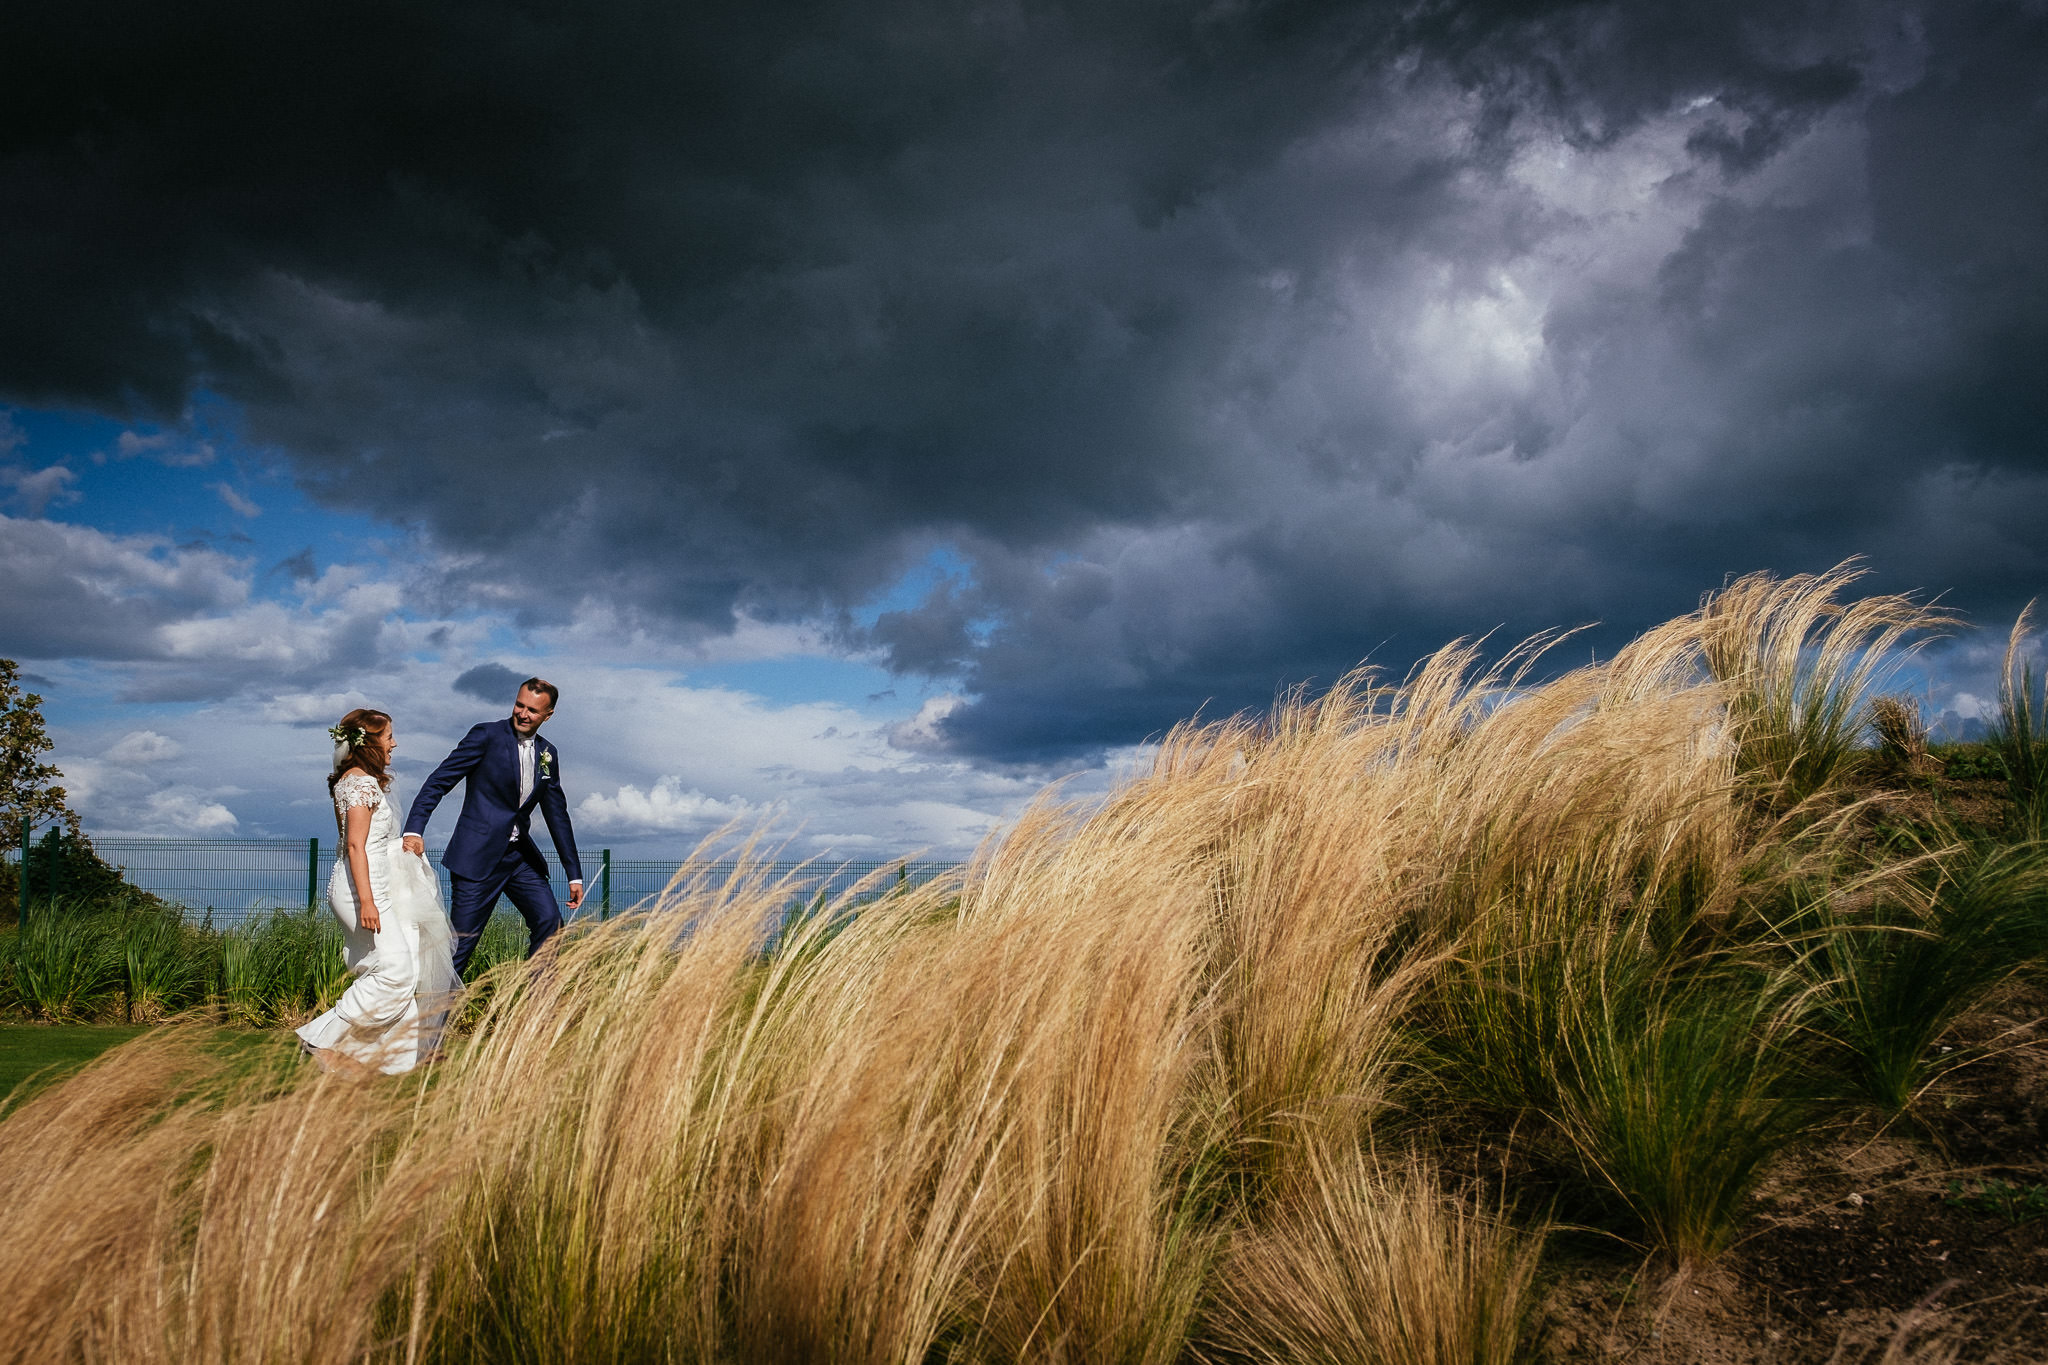 groom leading bride through sand dunes with a dramatic stormy sky in the background